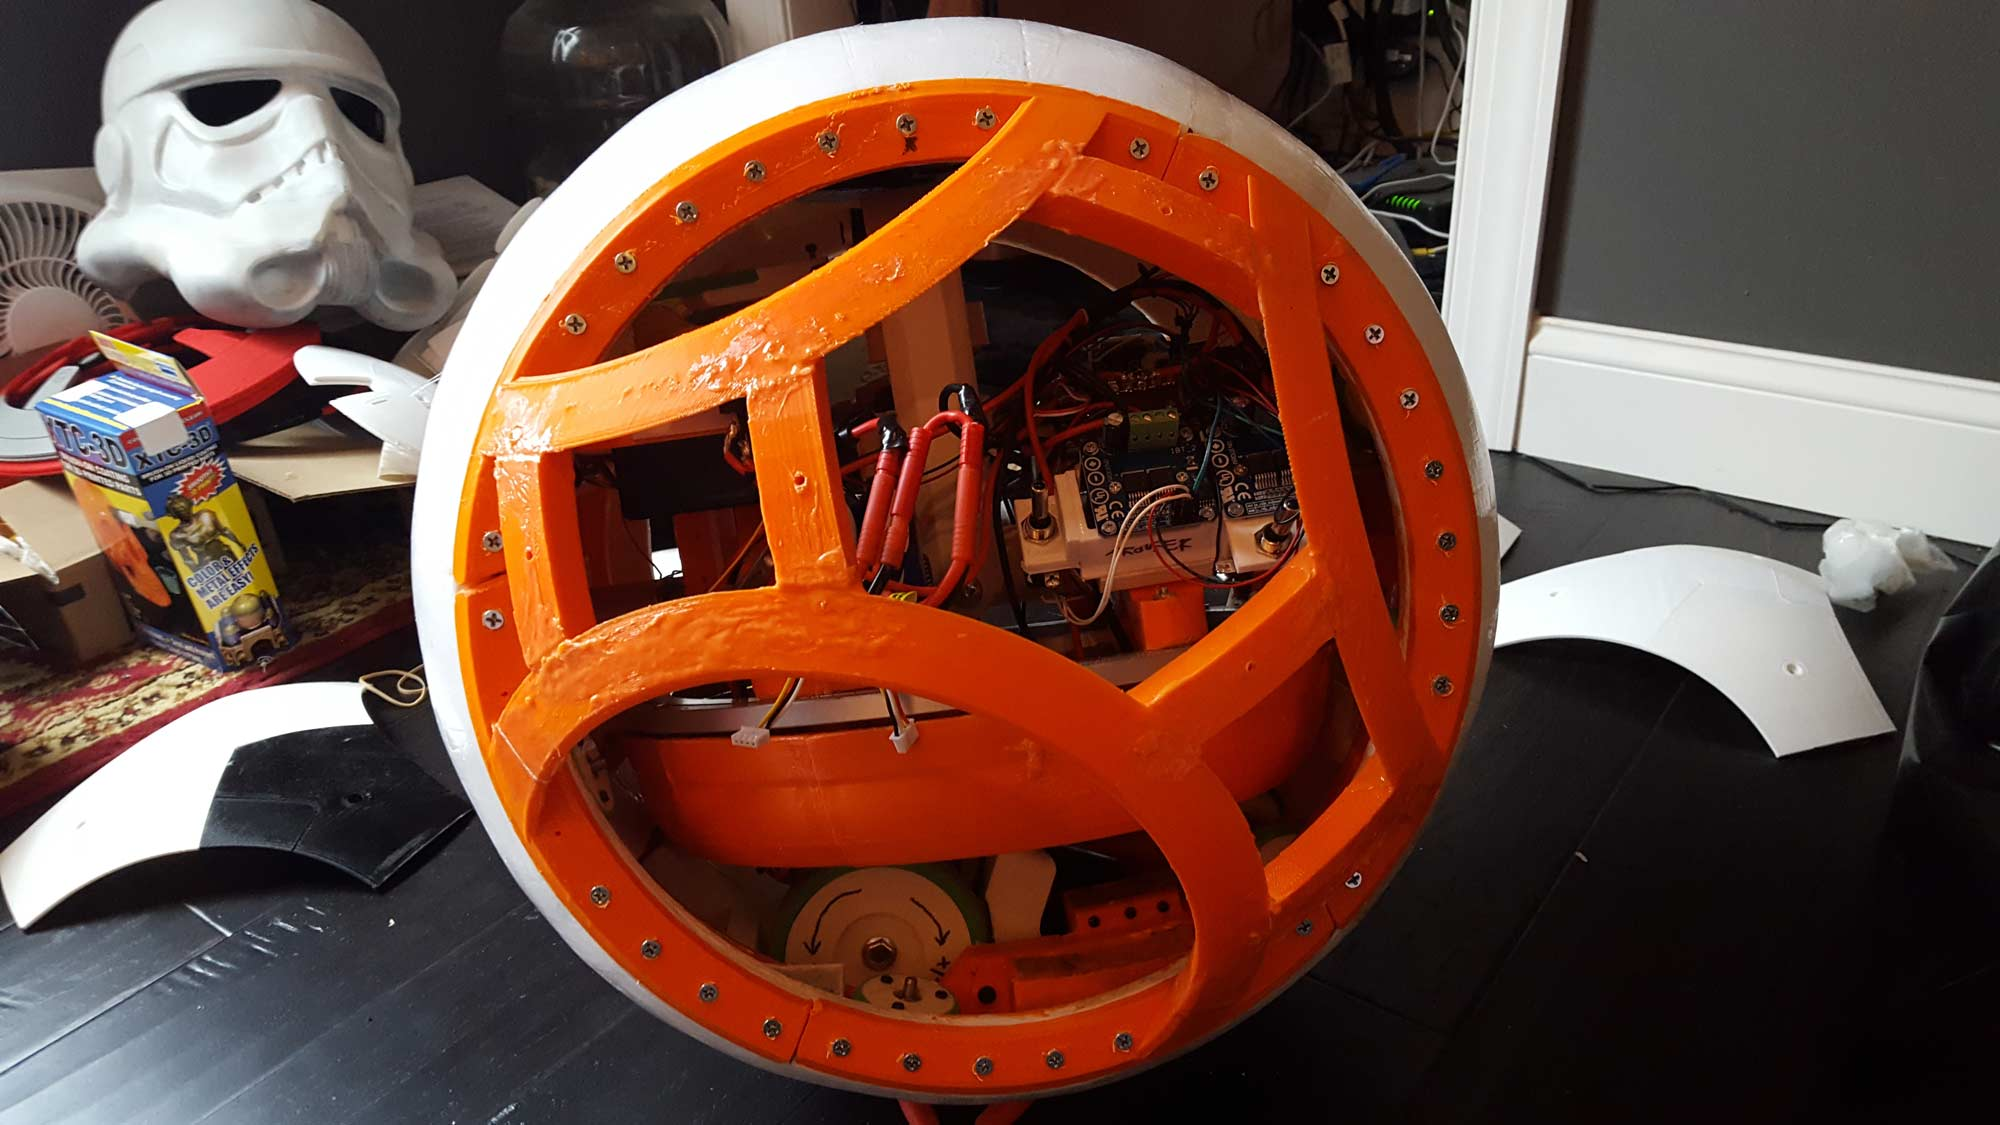 Full Frame install. I also beefed up the reinforcments on the frame with some more slurry.